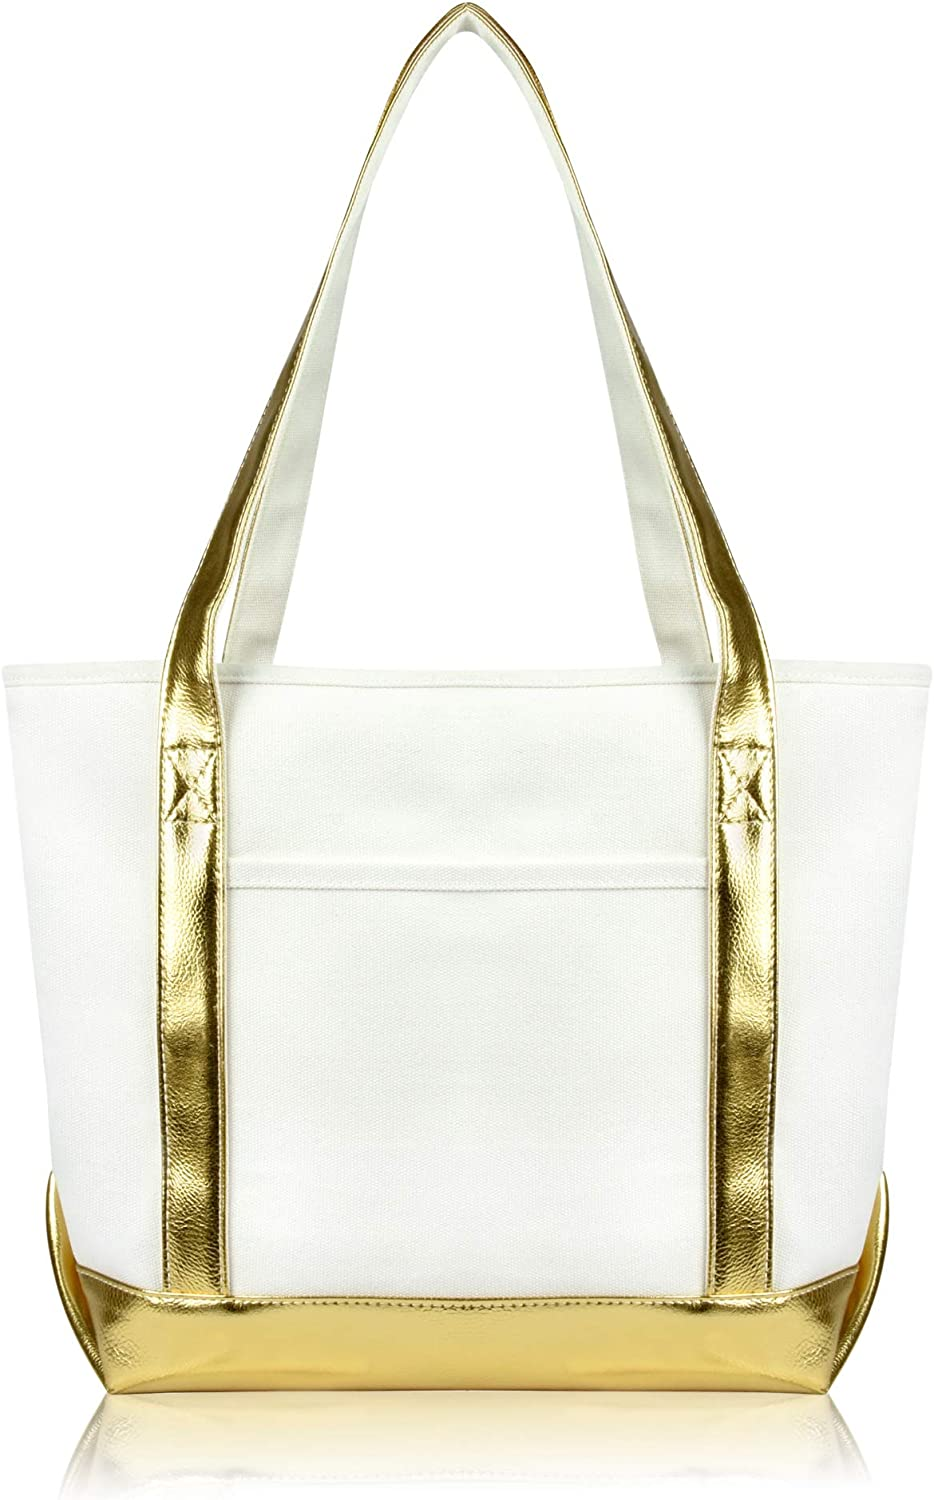 DALIX Daily Shoulder Tote Bag Premium Cotton in Gold